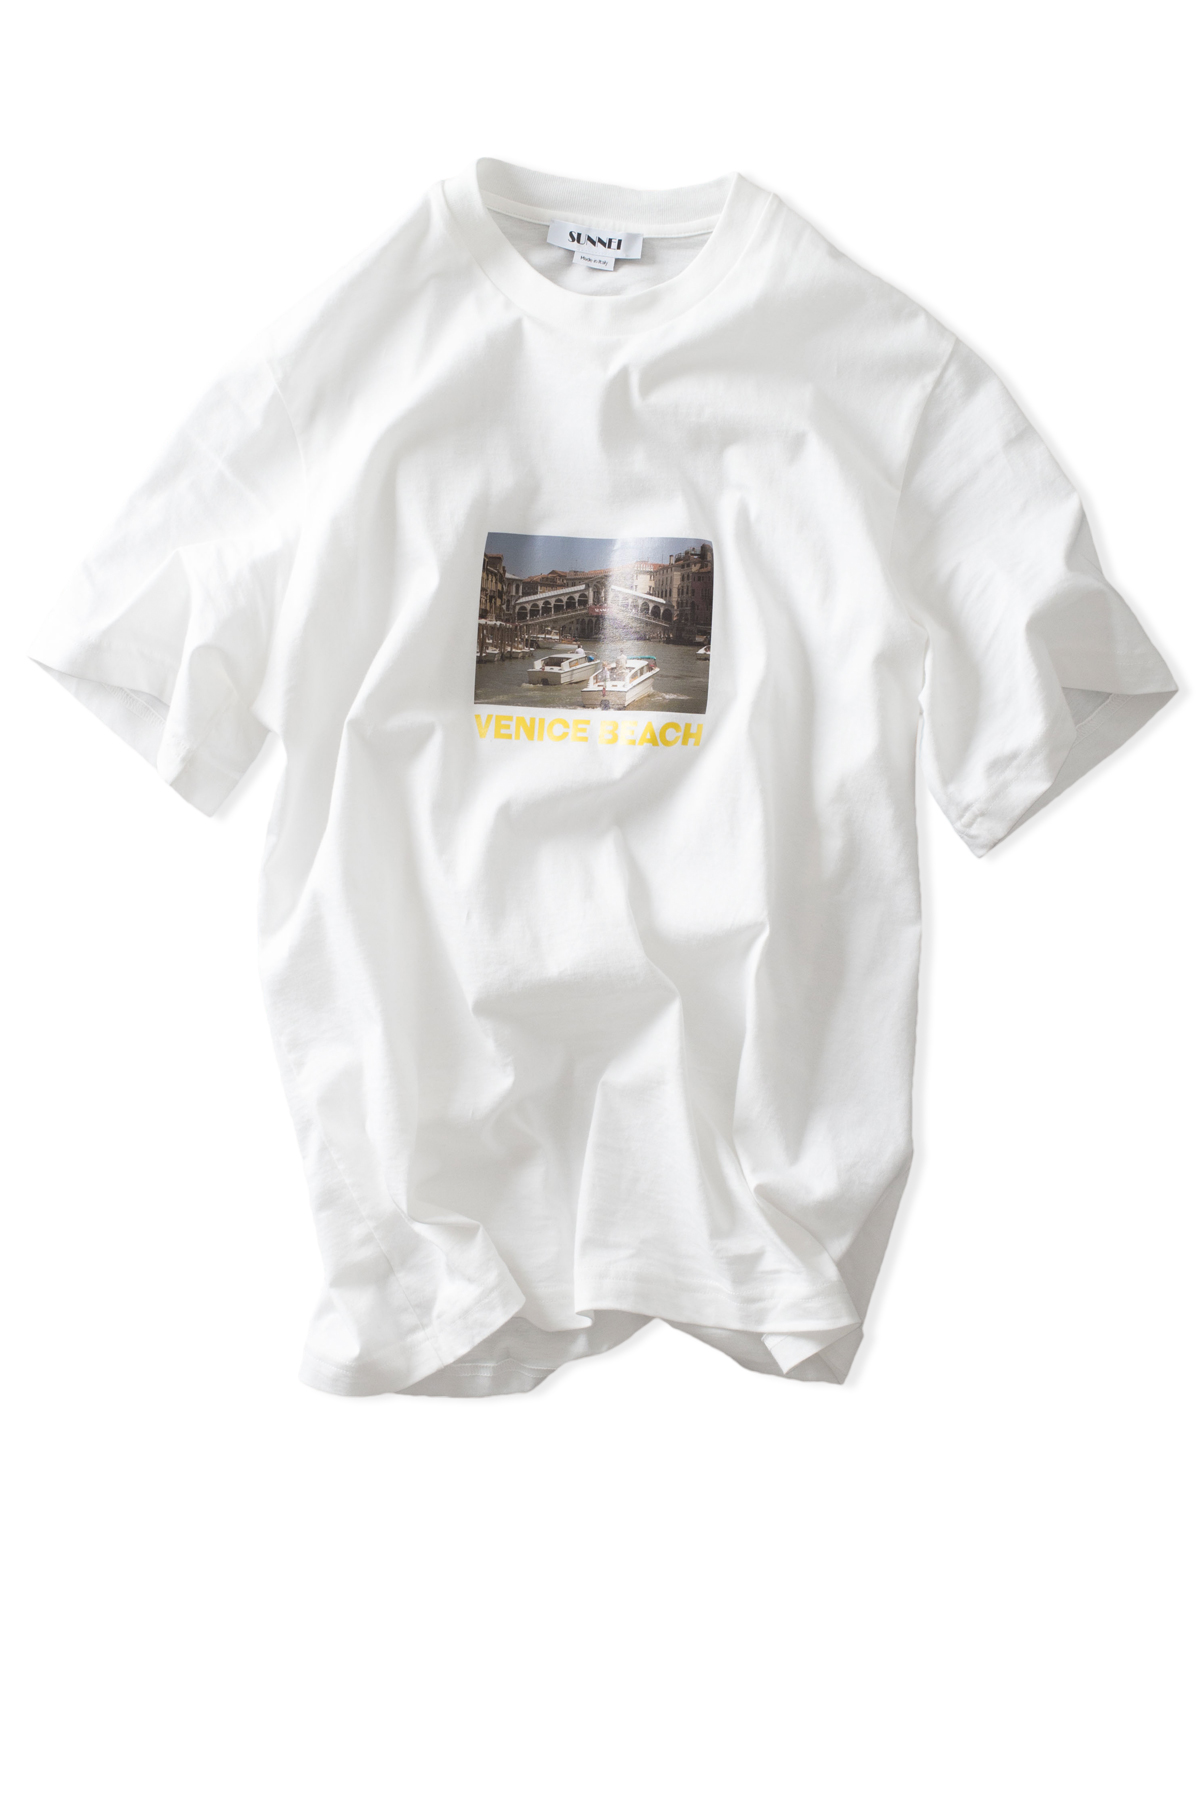 SUNNEI : T-Shirt Venice Beach (White)